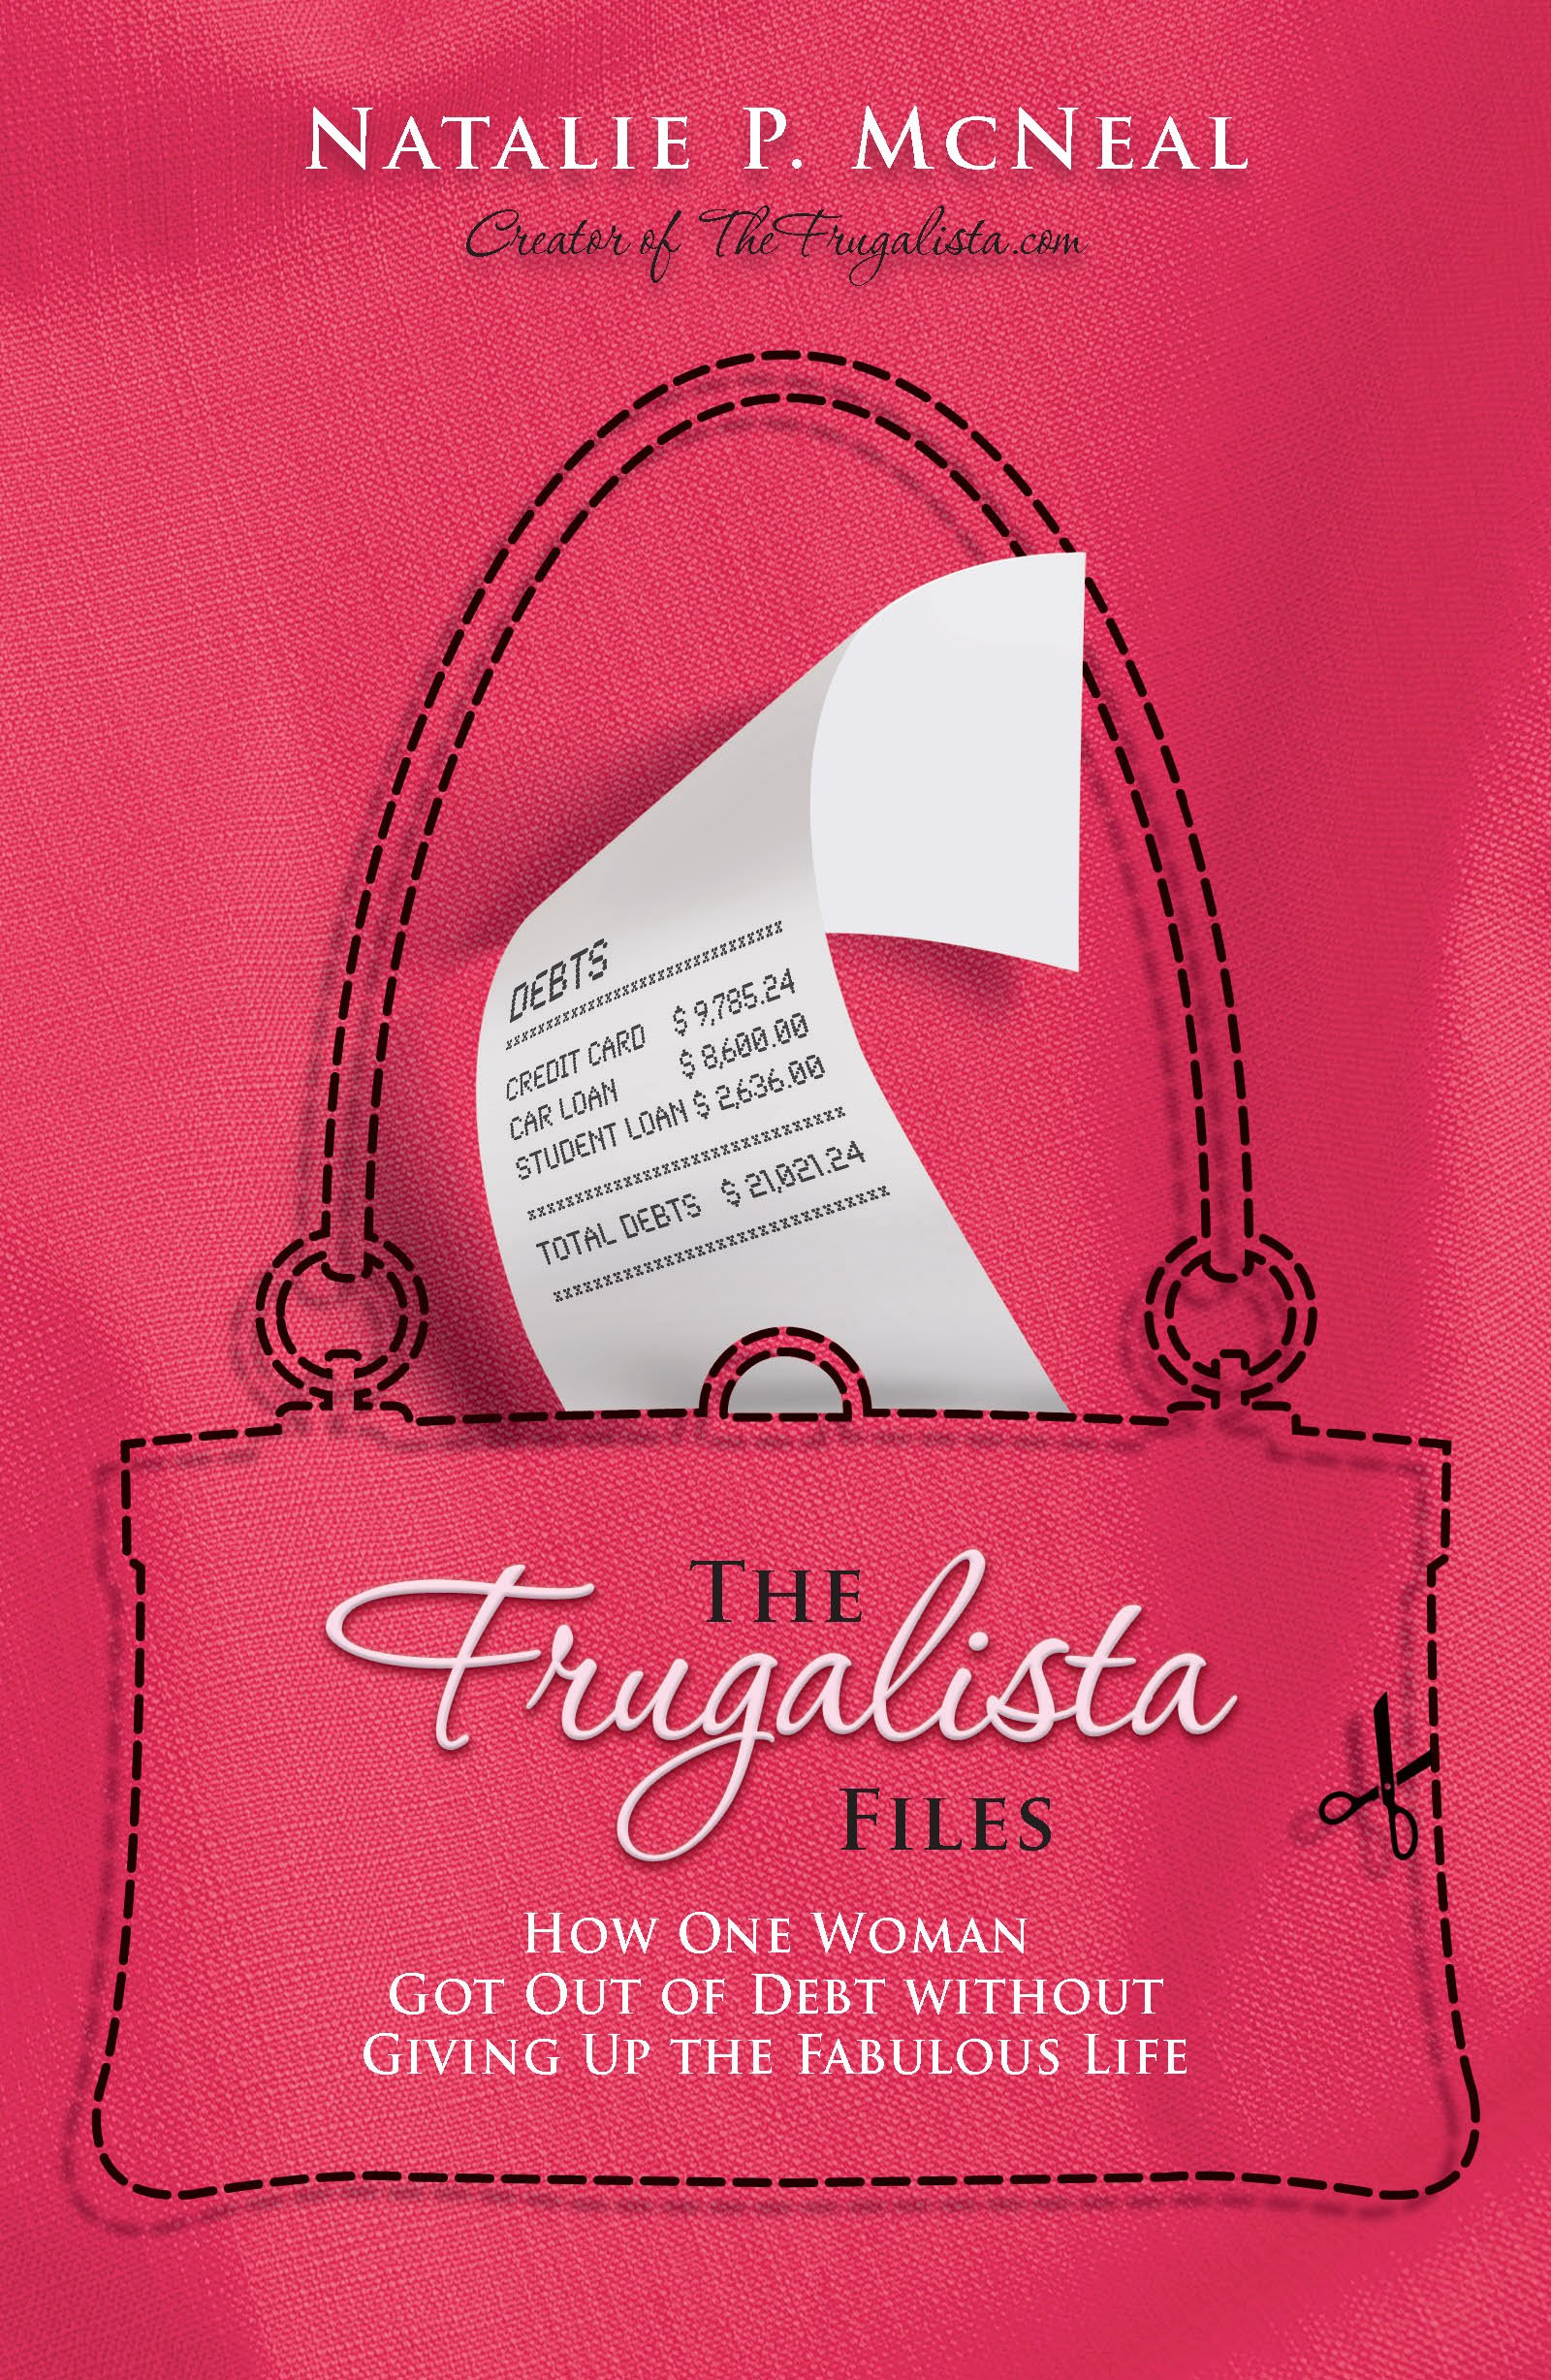 The Frugalista Files: How One Woman Got Out of Debt Without Giving Up the Fabulous Life pdf